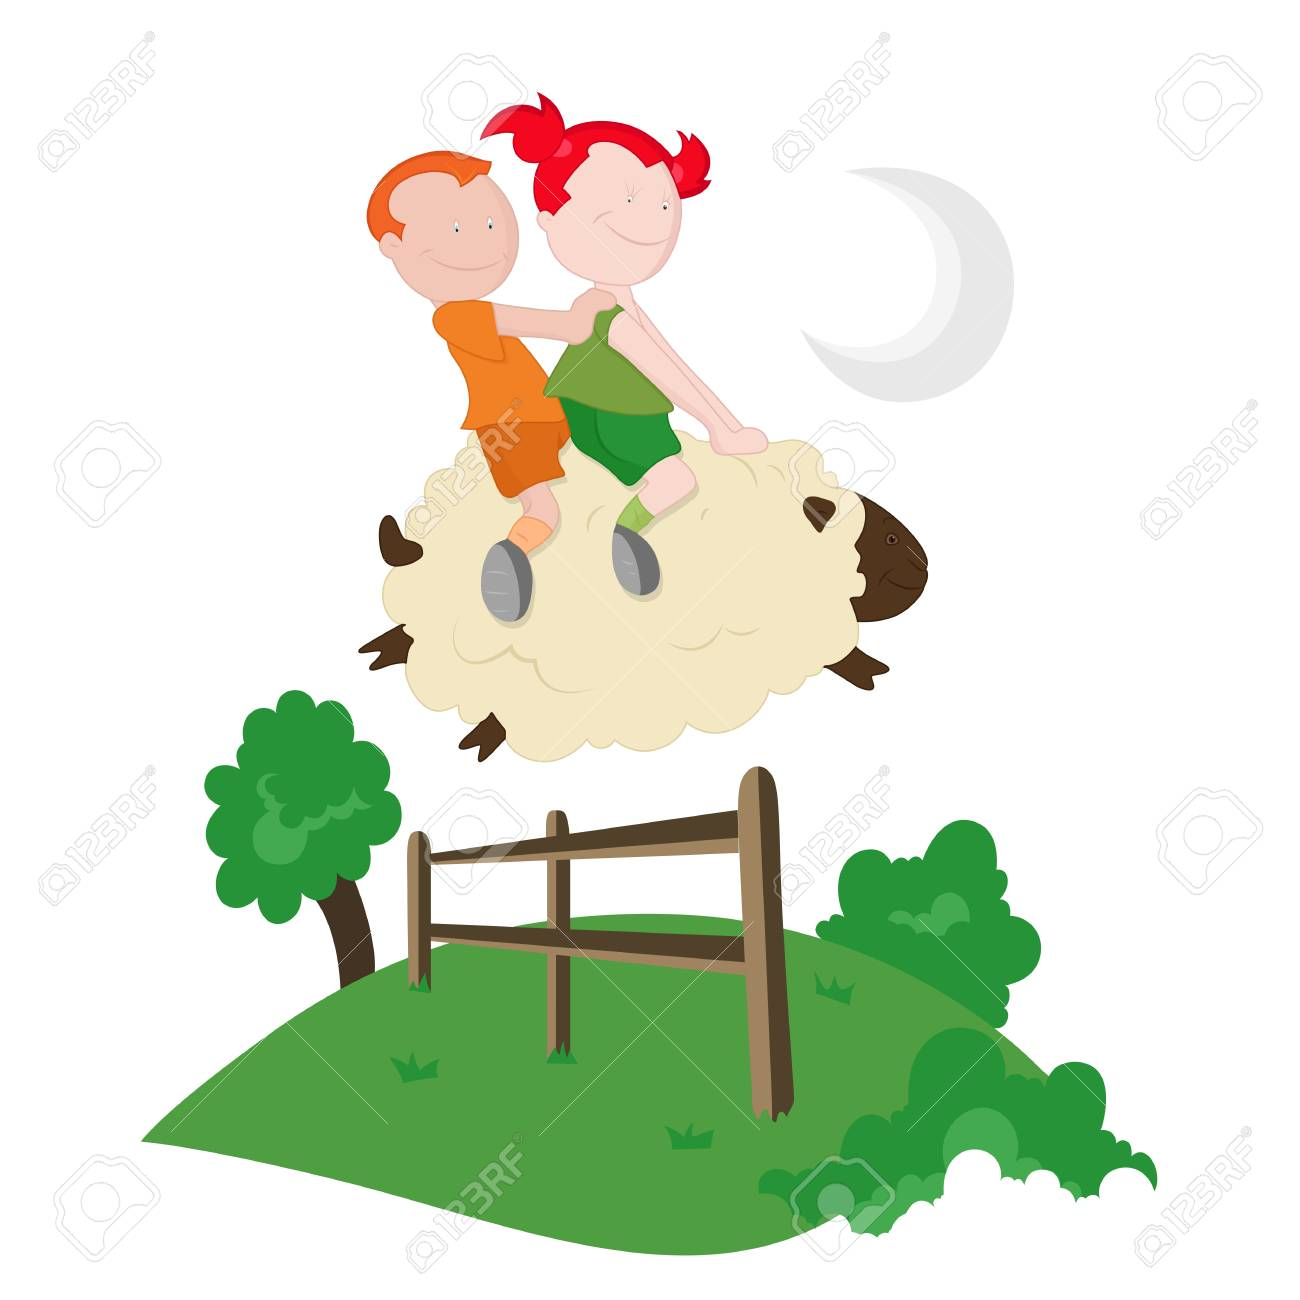 Kids Riding on Sheep Stock Vector - 13052205